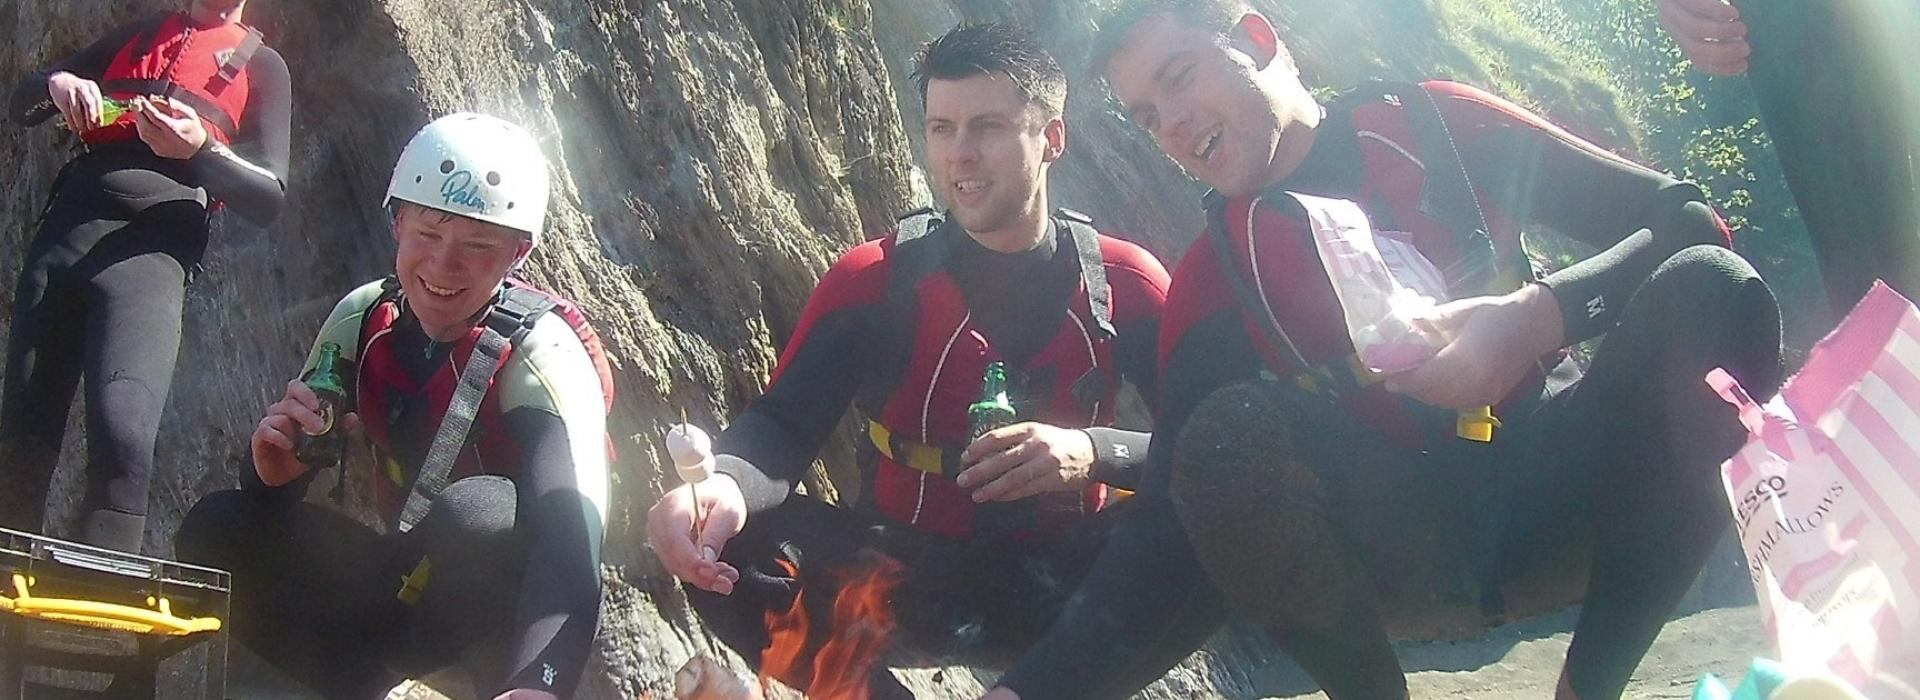 stag do ideas, beach fire, stag do devon, stag and hen, stag activities